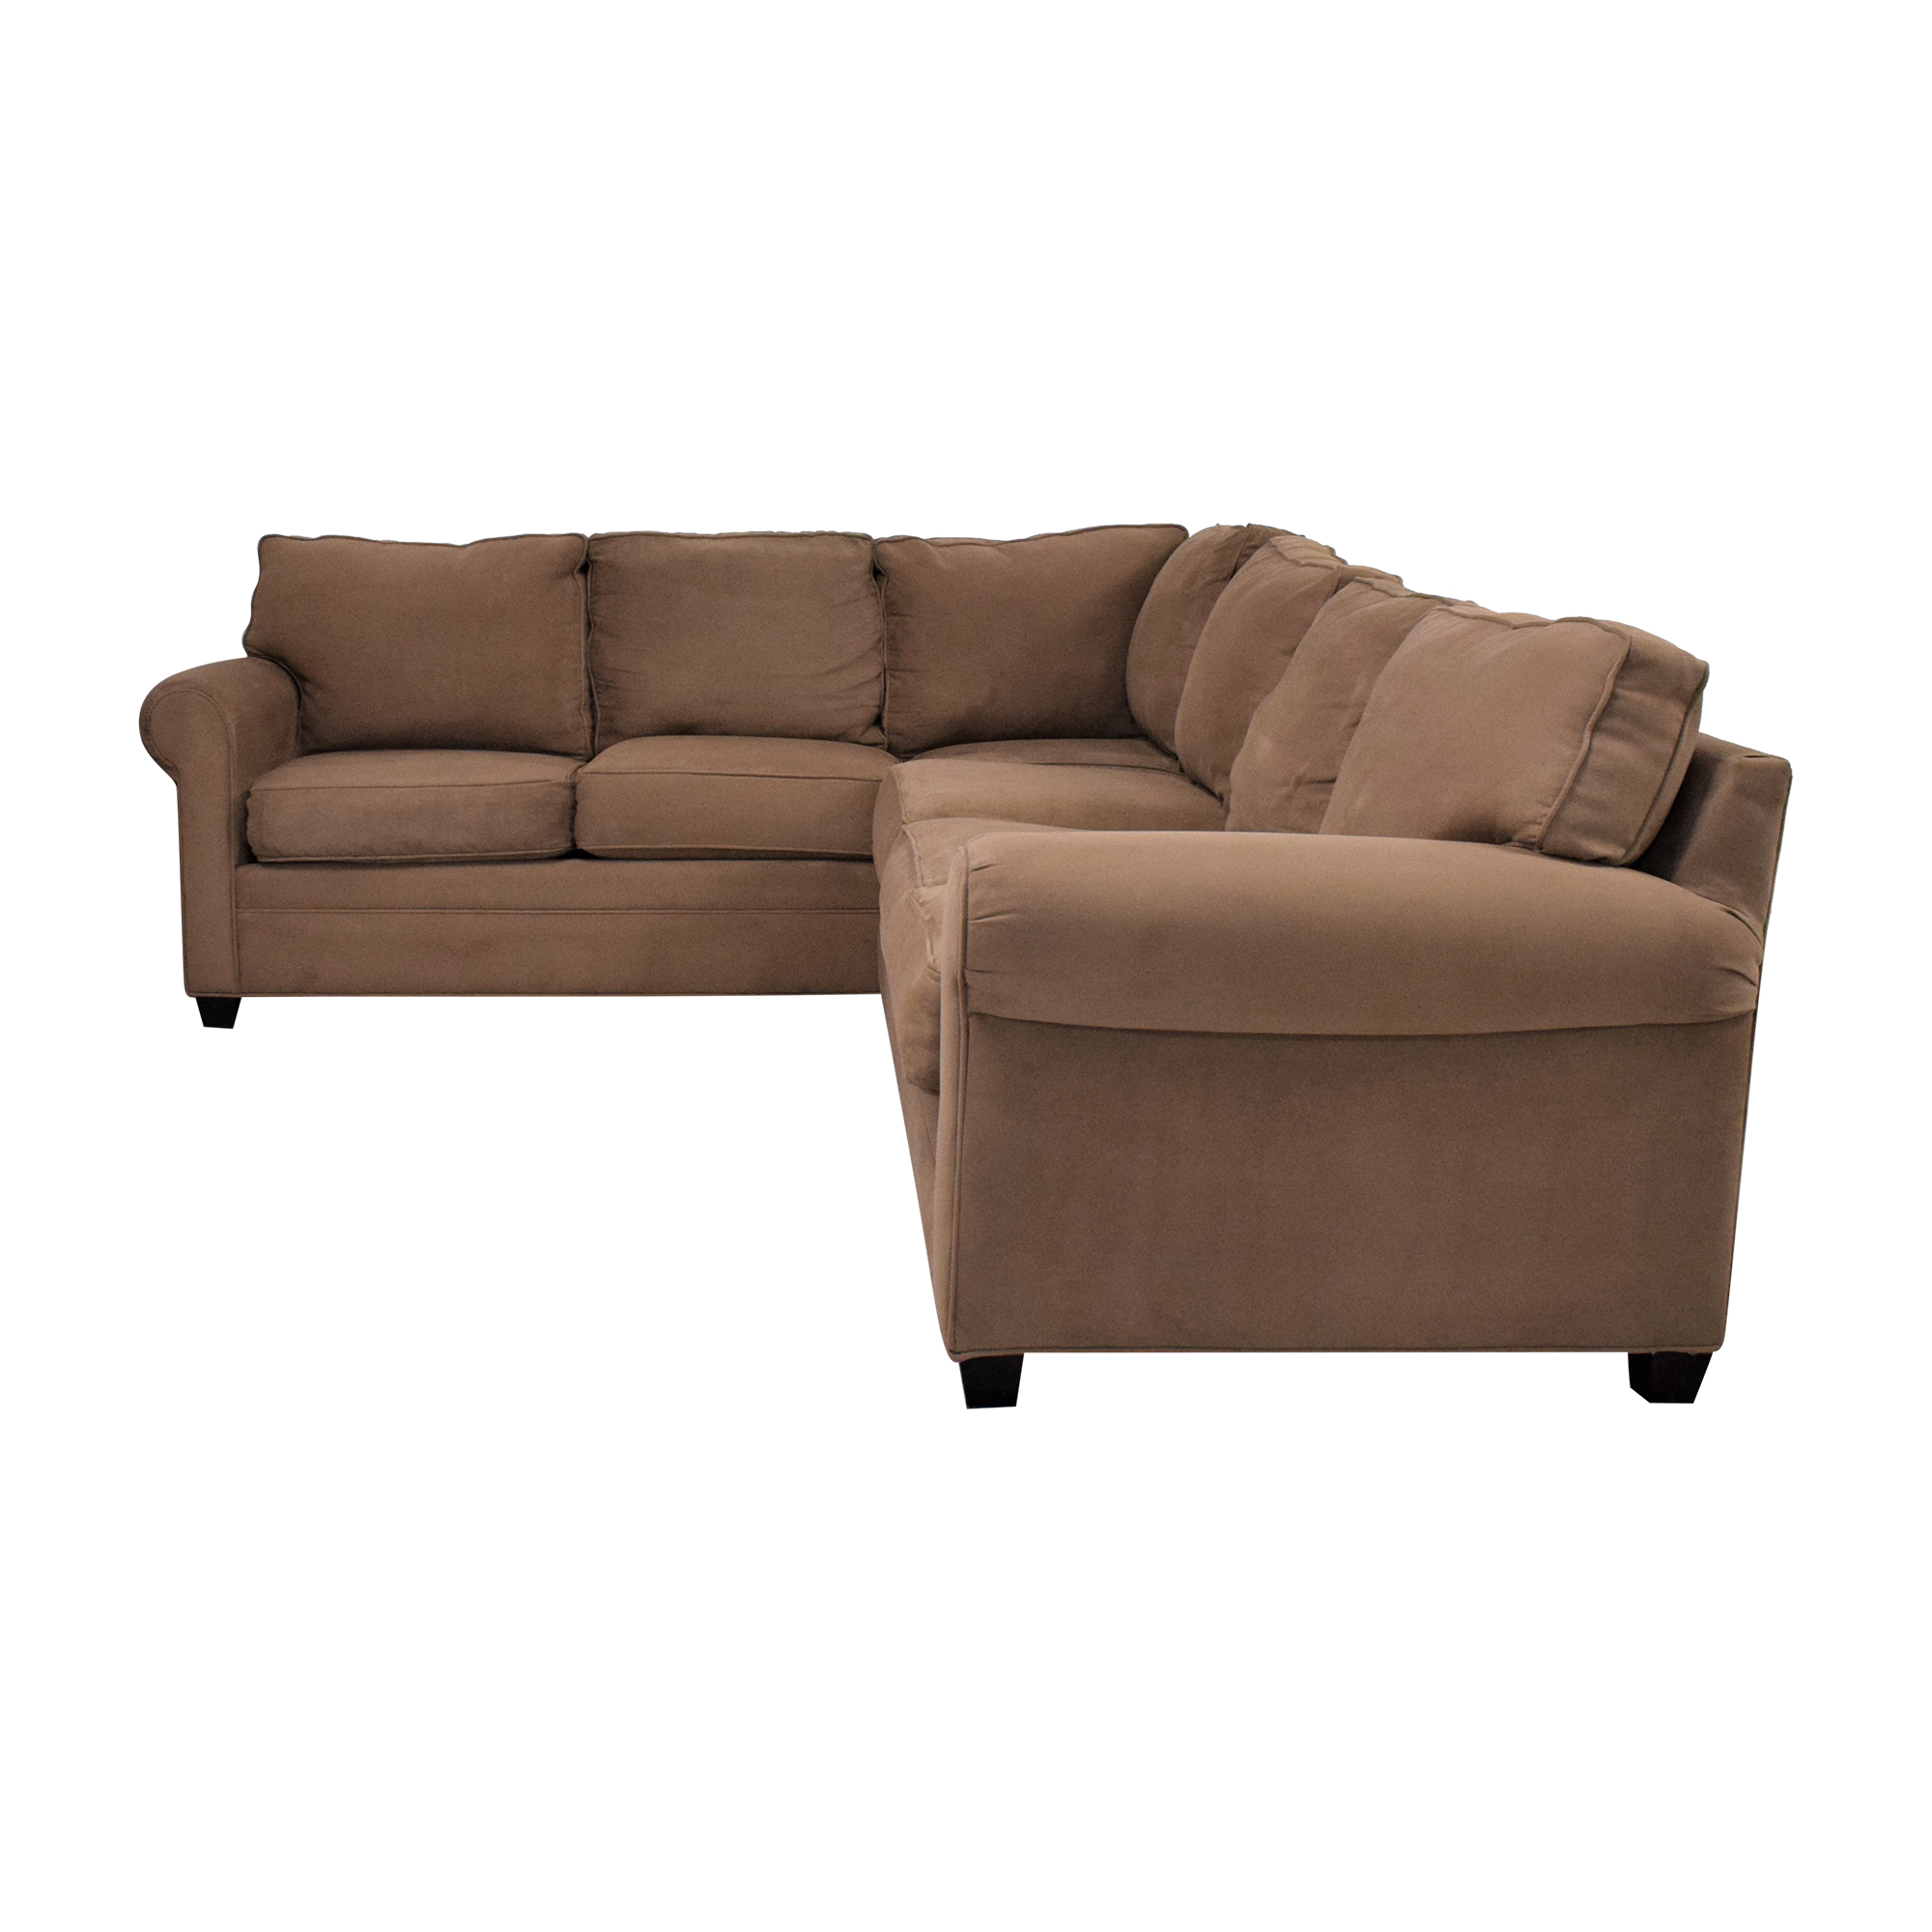 Raymour & Flanigan Raymour & Flanigan Sectional Sofa discount